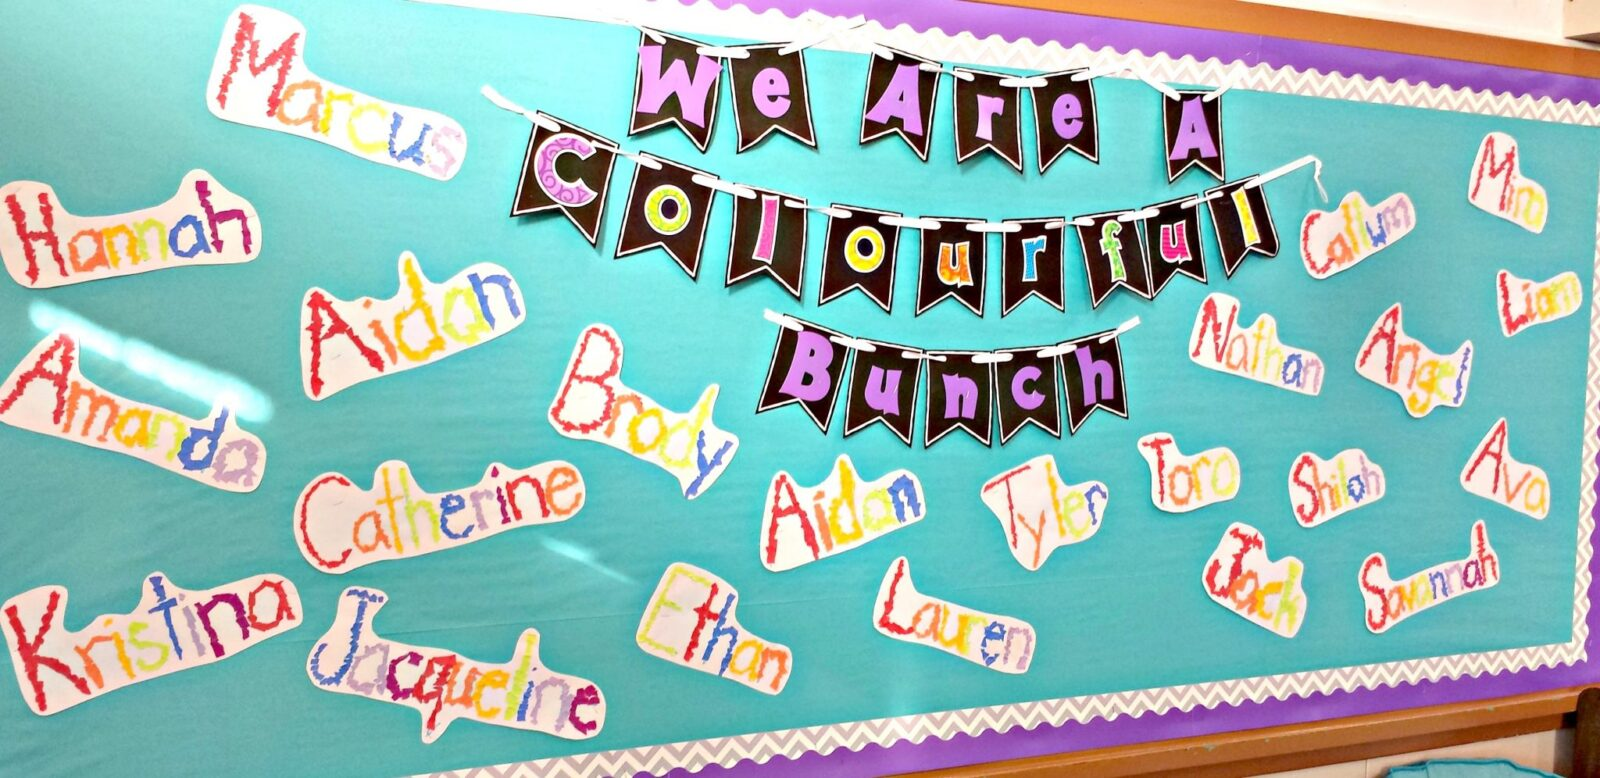 first week of school activities - bulletin board with names